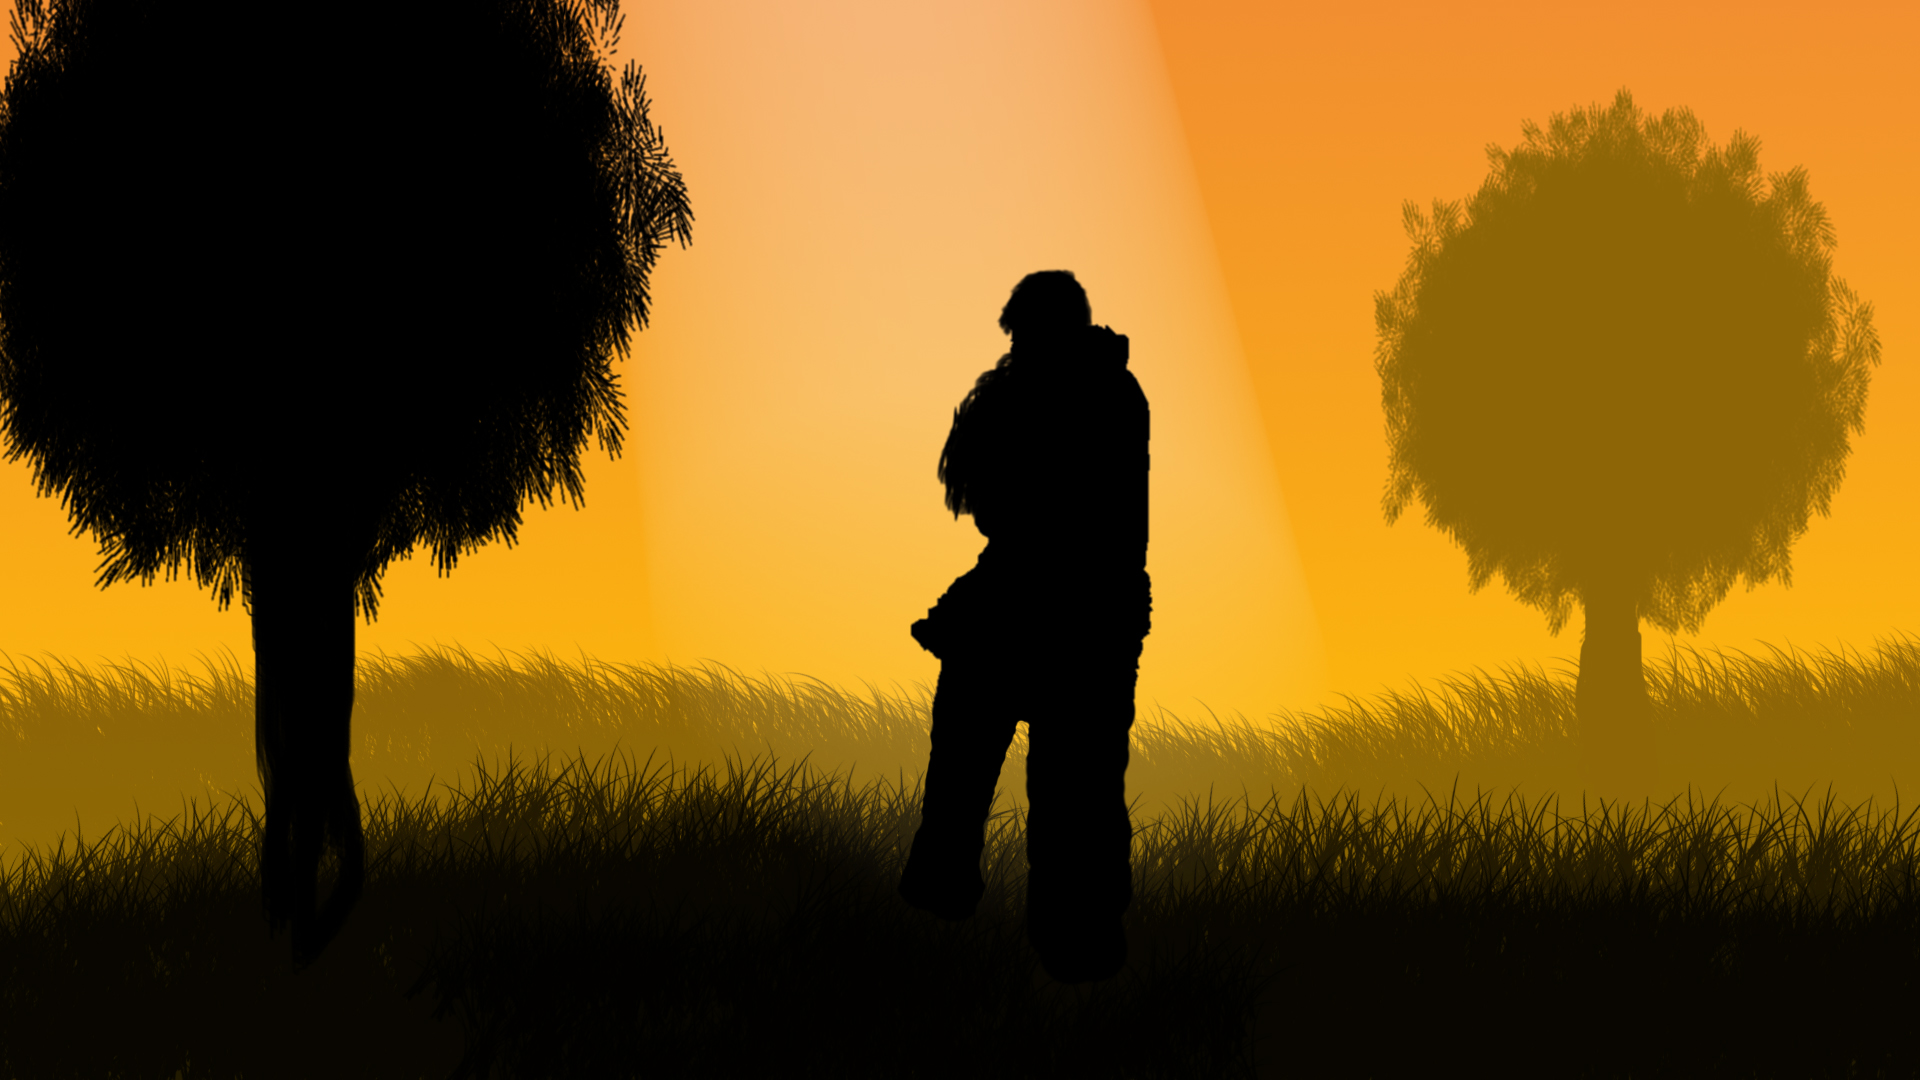 Hugs in the field Full HD Wallpaper and Background Image ...